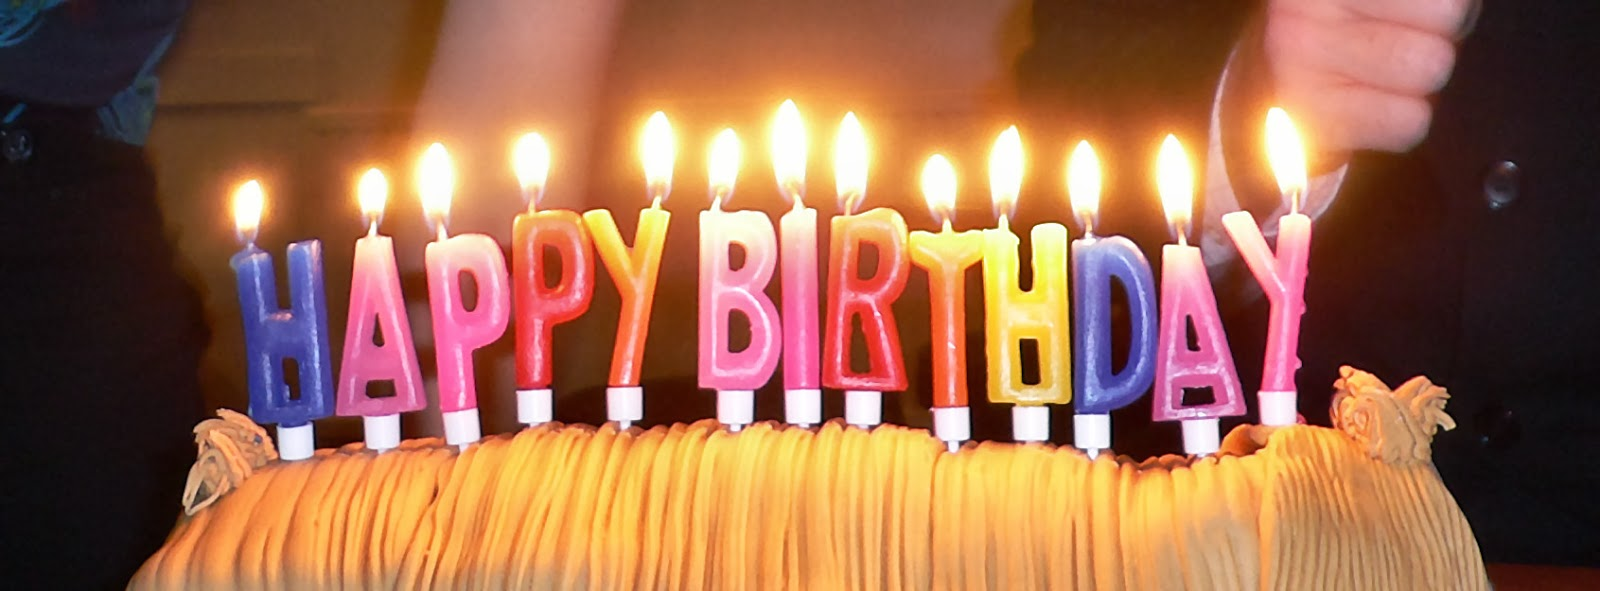 Imageslist com birthday quotes part 1 - Happy Birthday With Letters Part 1